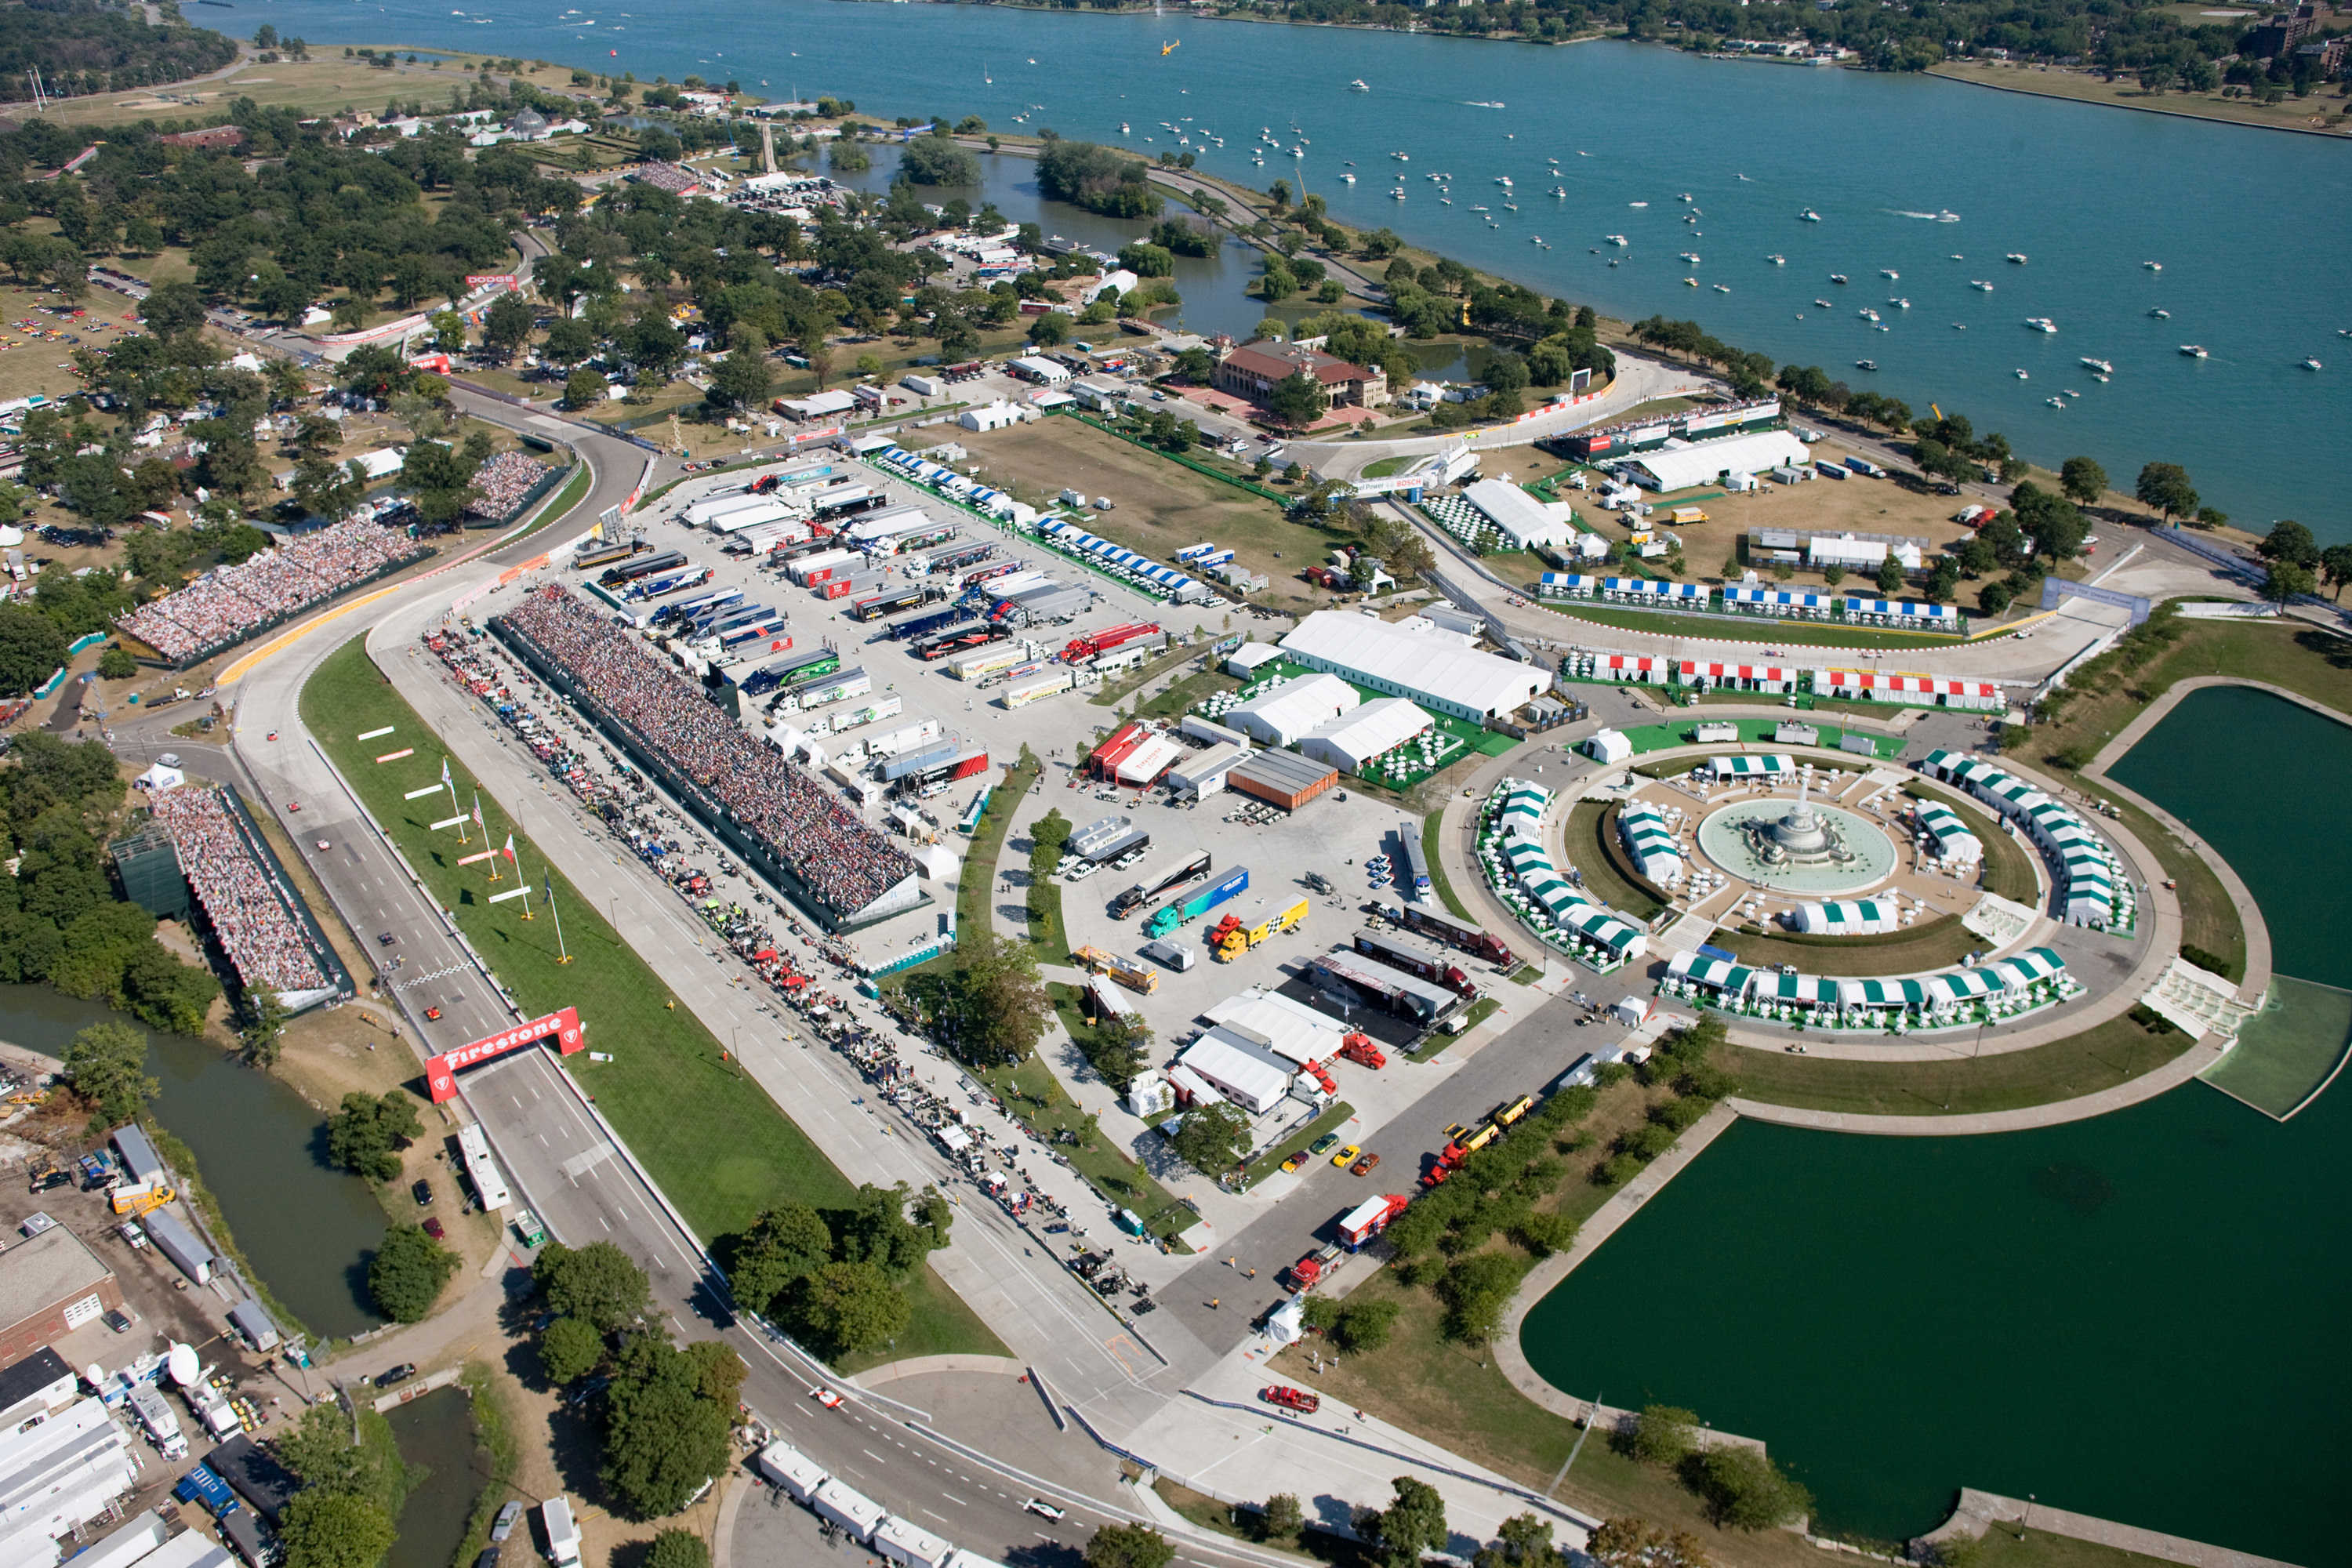 oklahoma state road map with Belle Isle Grand Prix 2015 Detroit May 29th 31st 2015 on 38094a1 besides Missouri further Louisiana River Map furthermore Two Exits Too Far moreover Ftzlist Map.